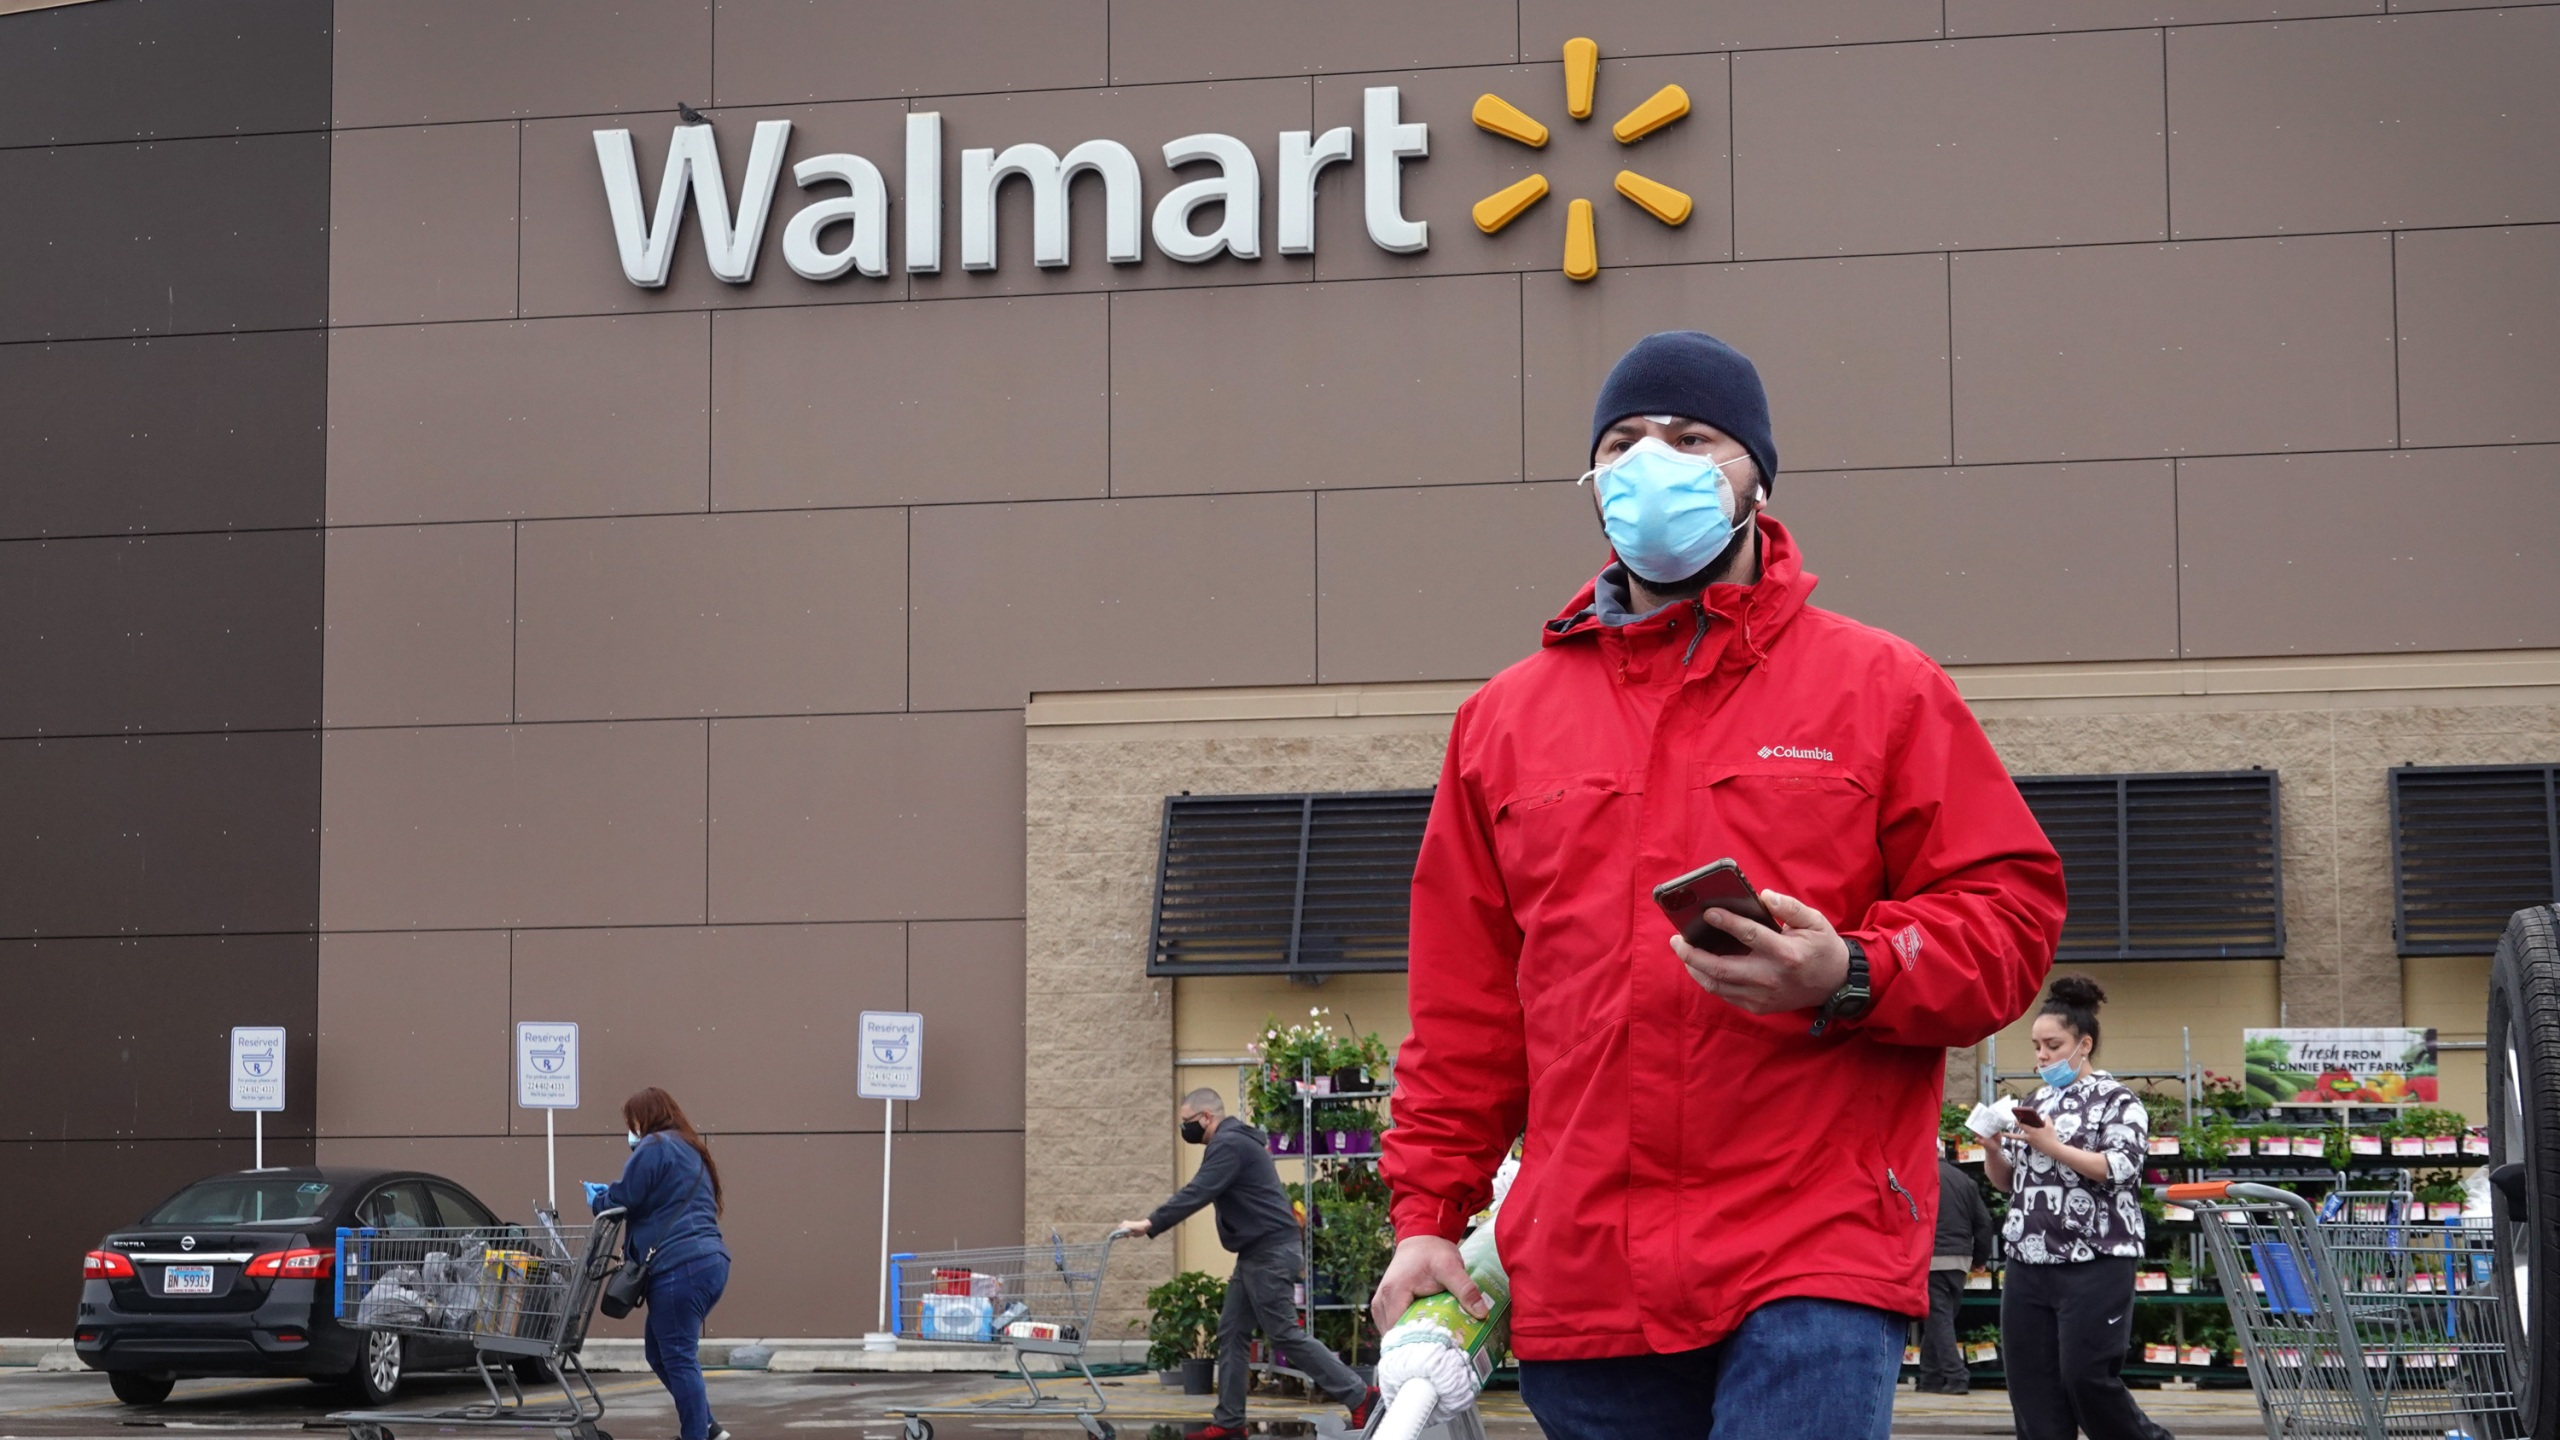 Customers shop at a Walmart store in Chicago in May. (Scott Olson/Getty Images)